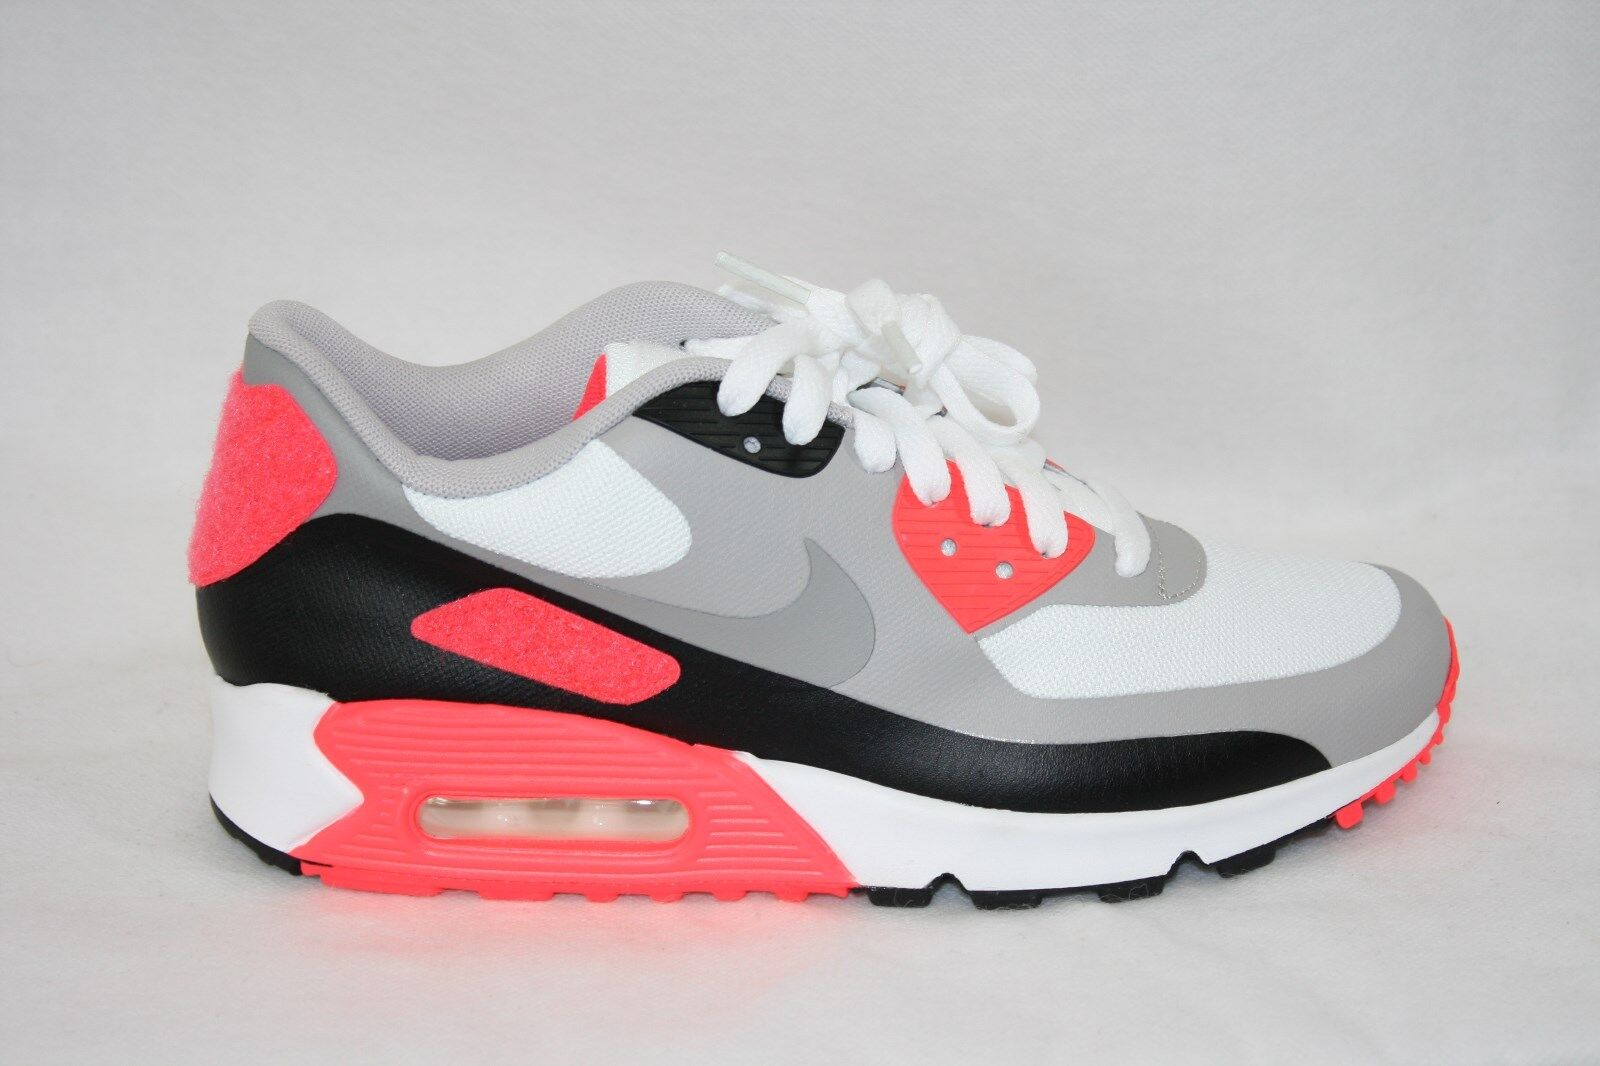 the latest ea2ff 8b64f NEW Boys Mens NIKE Air Max 90 V SP 746682 106 Infrared Patches Sneakers  Shoes well